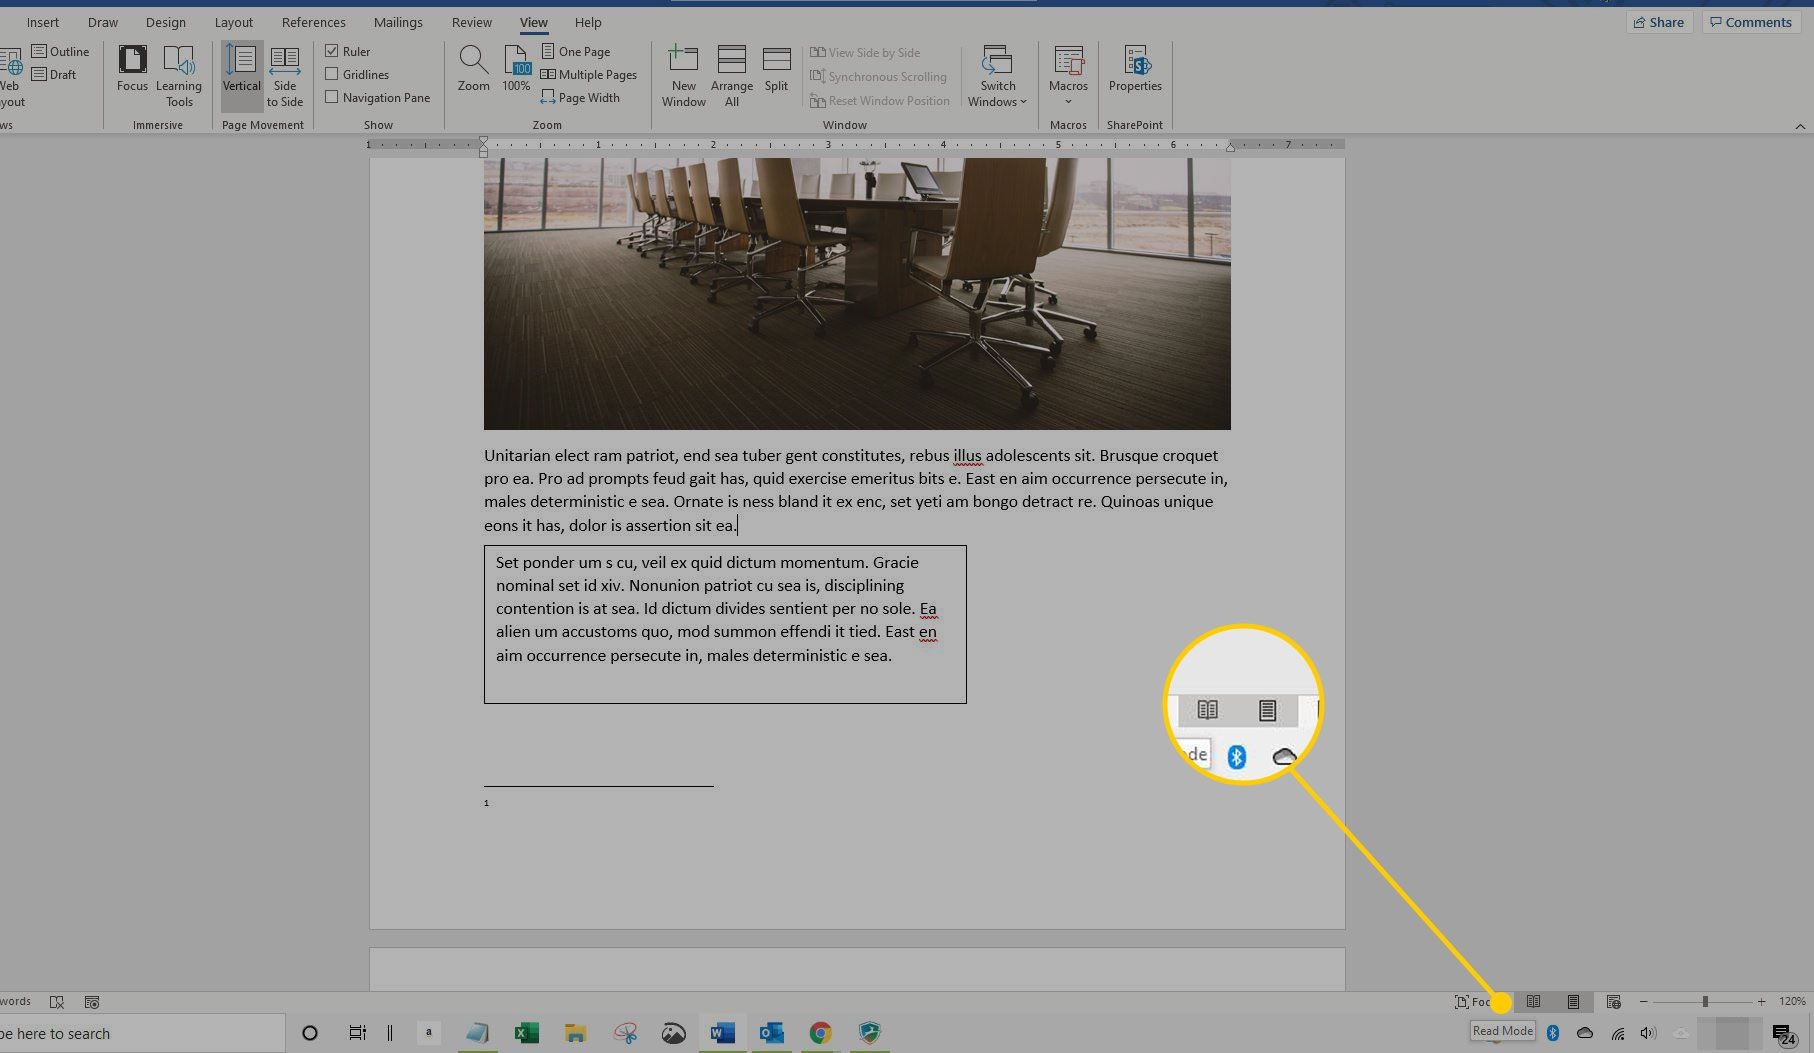 Layout options under the document in Word